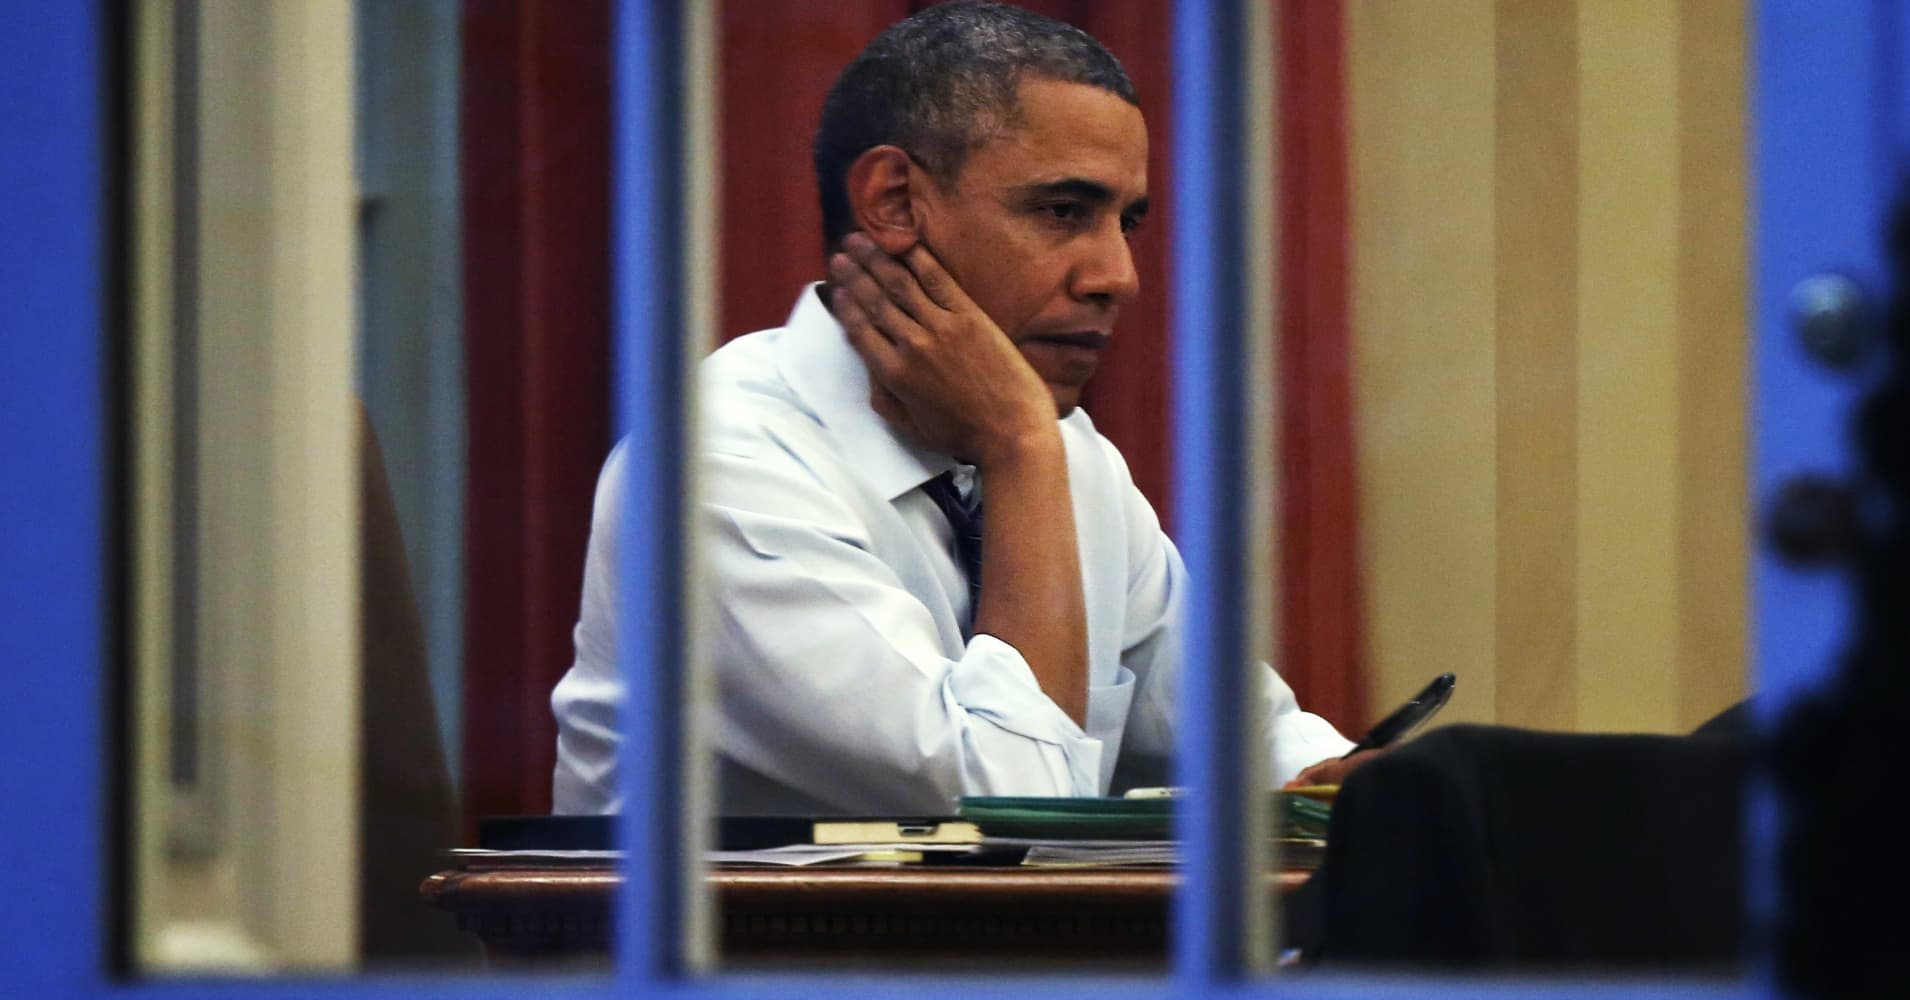 President Barack Obama contemplates the State of the Union in the Oval Office.